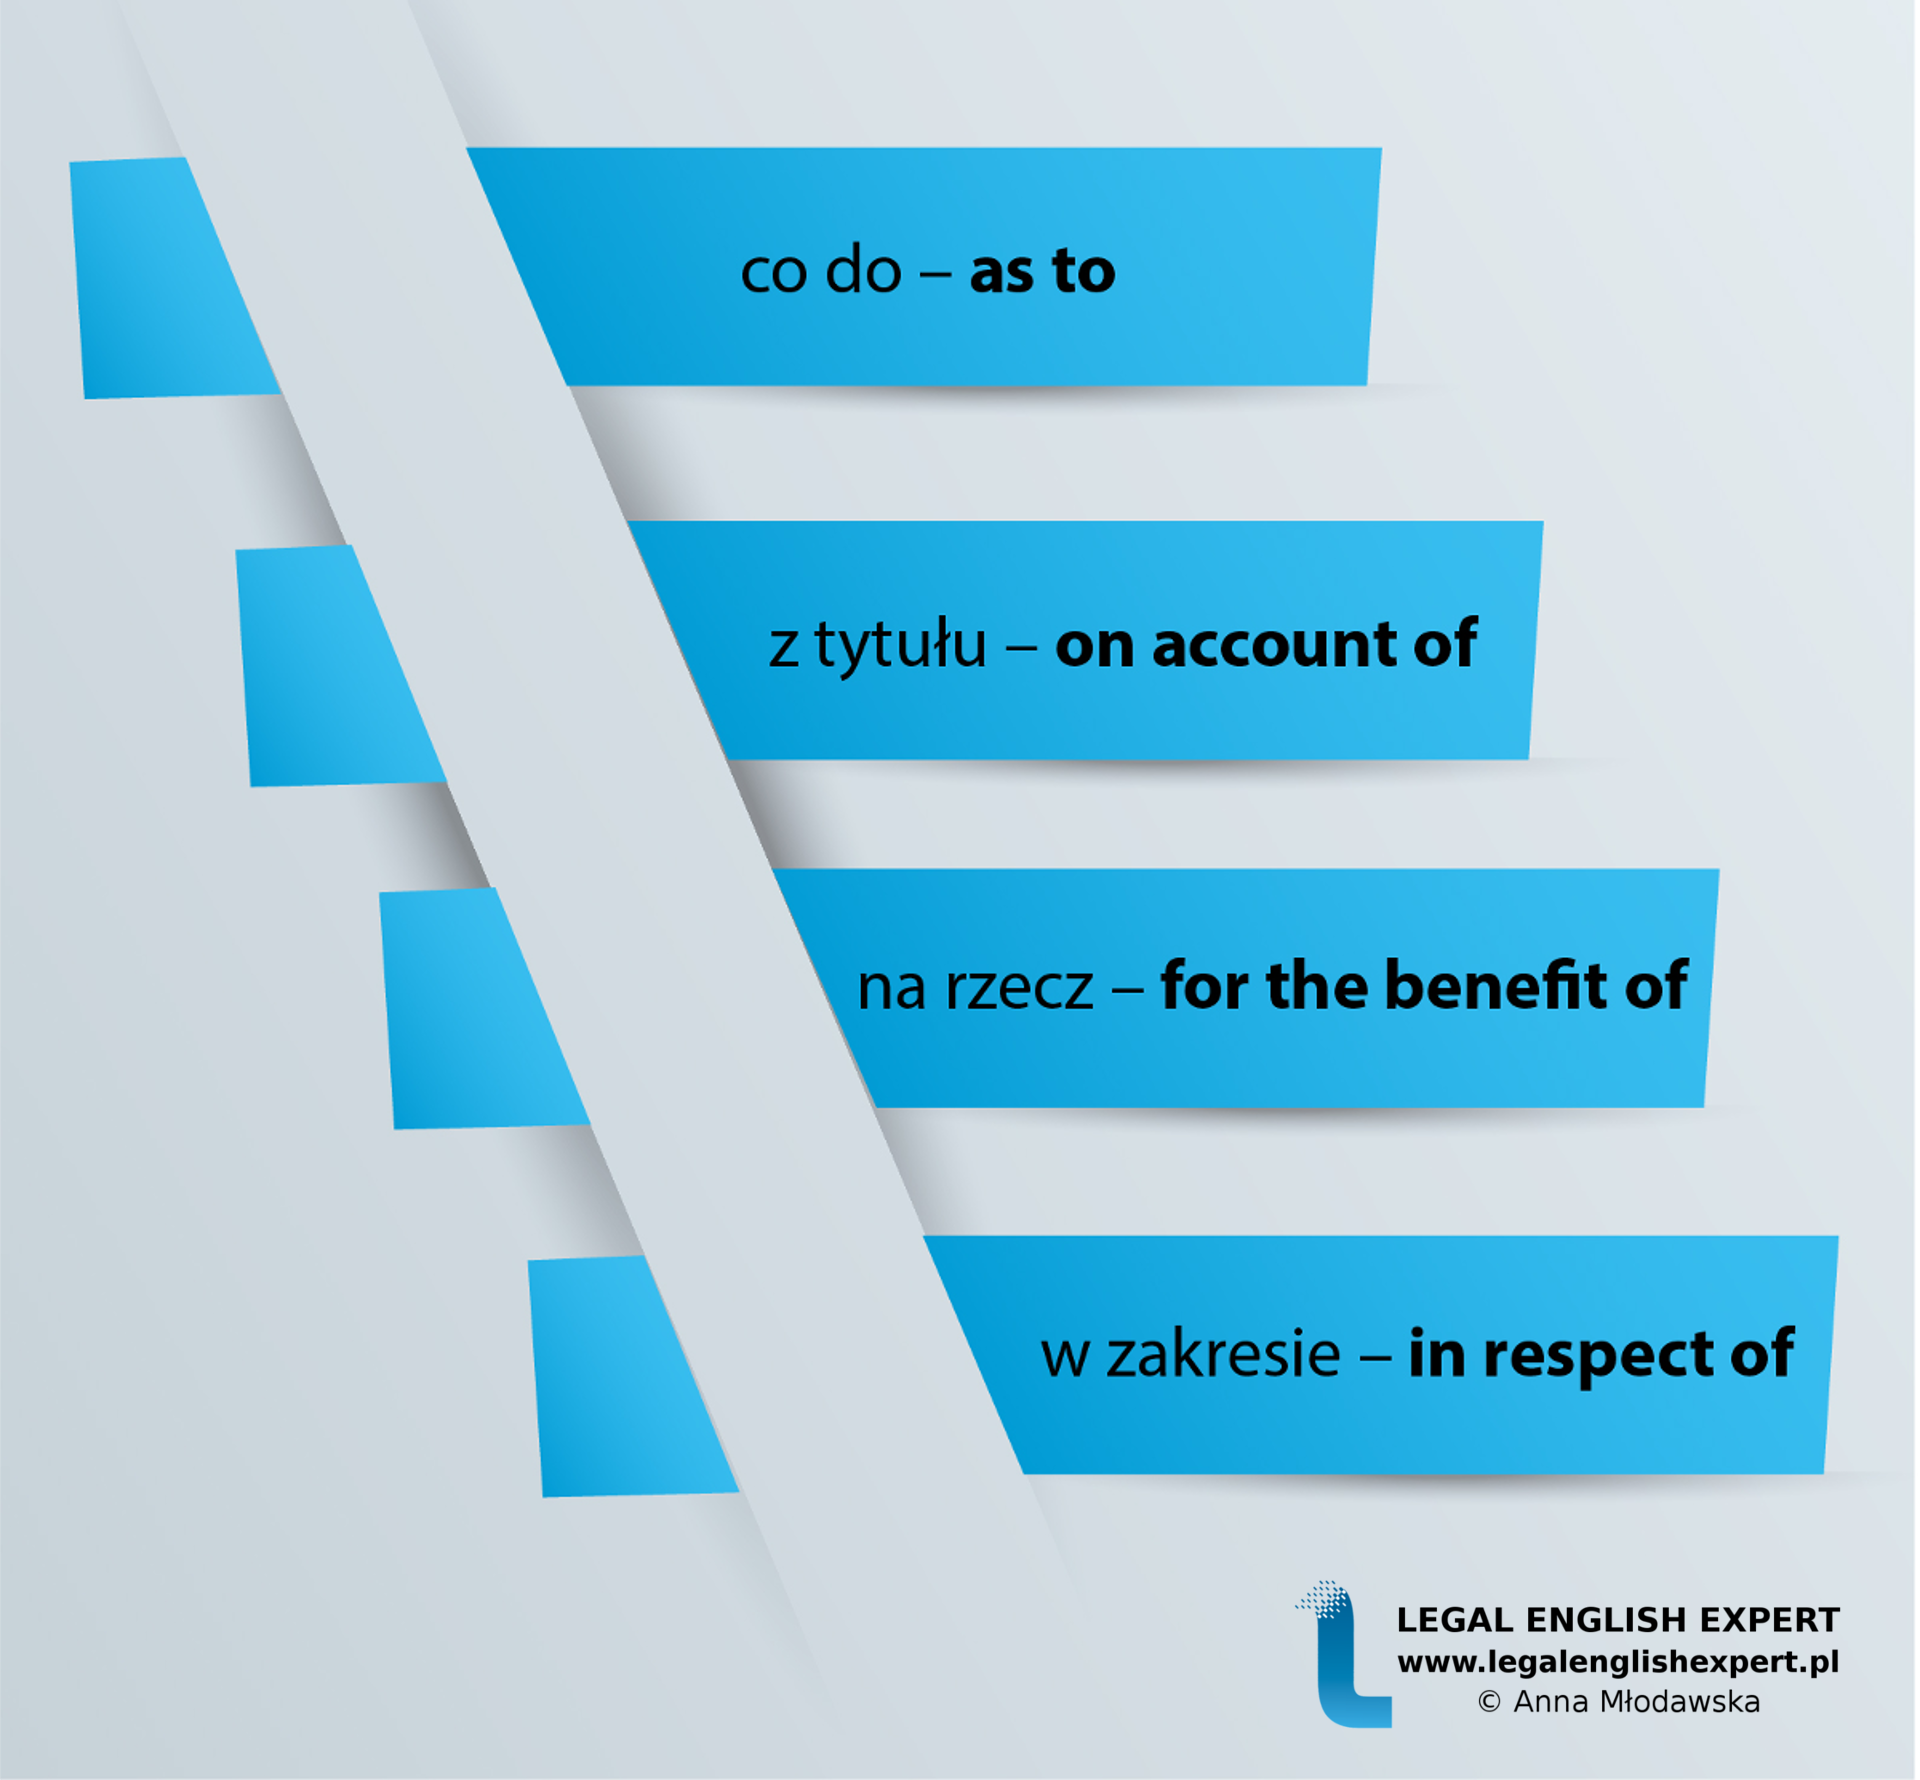 LEGAL ENGLISH EXPERT - infografika_8 - co do, z tytułu